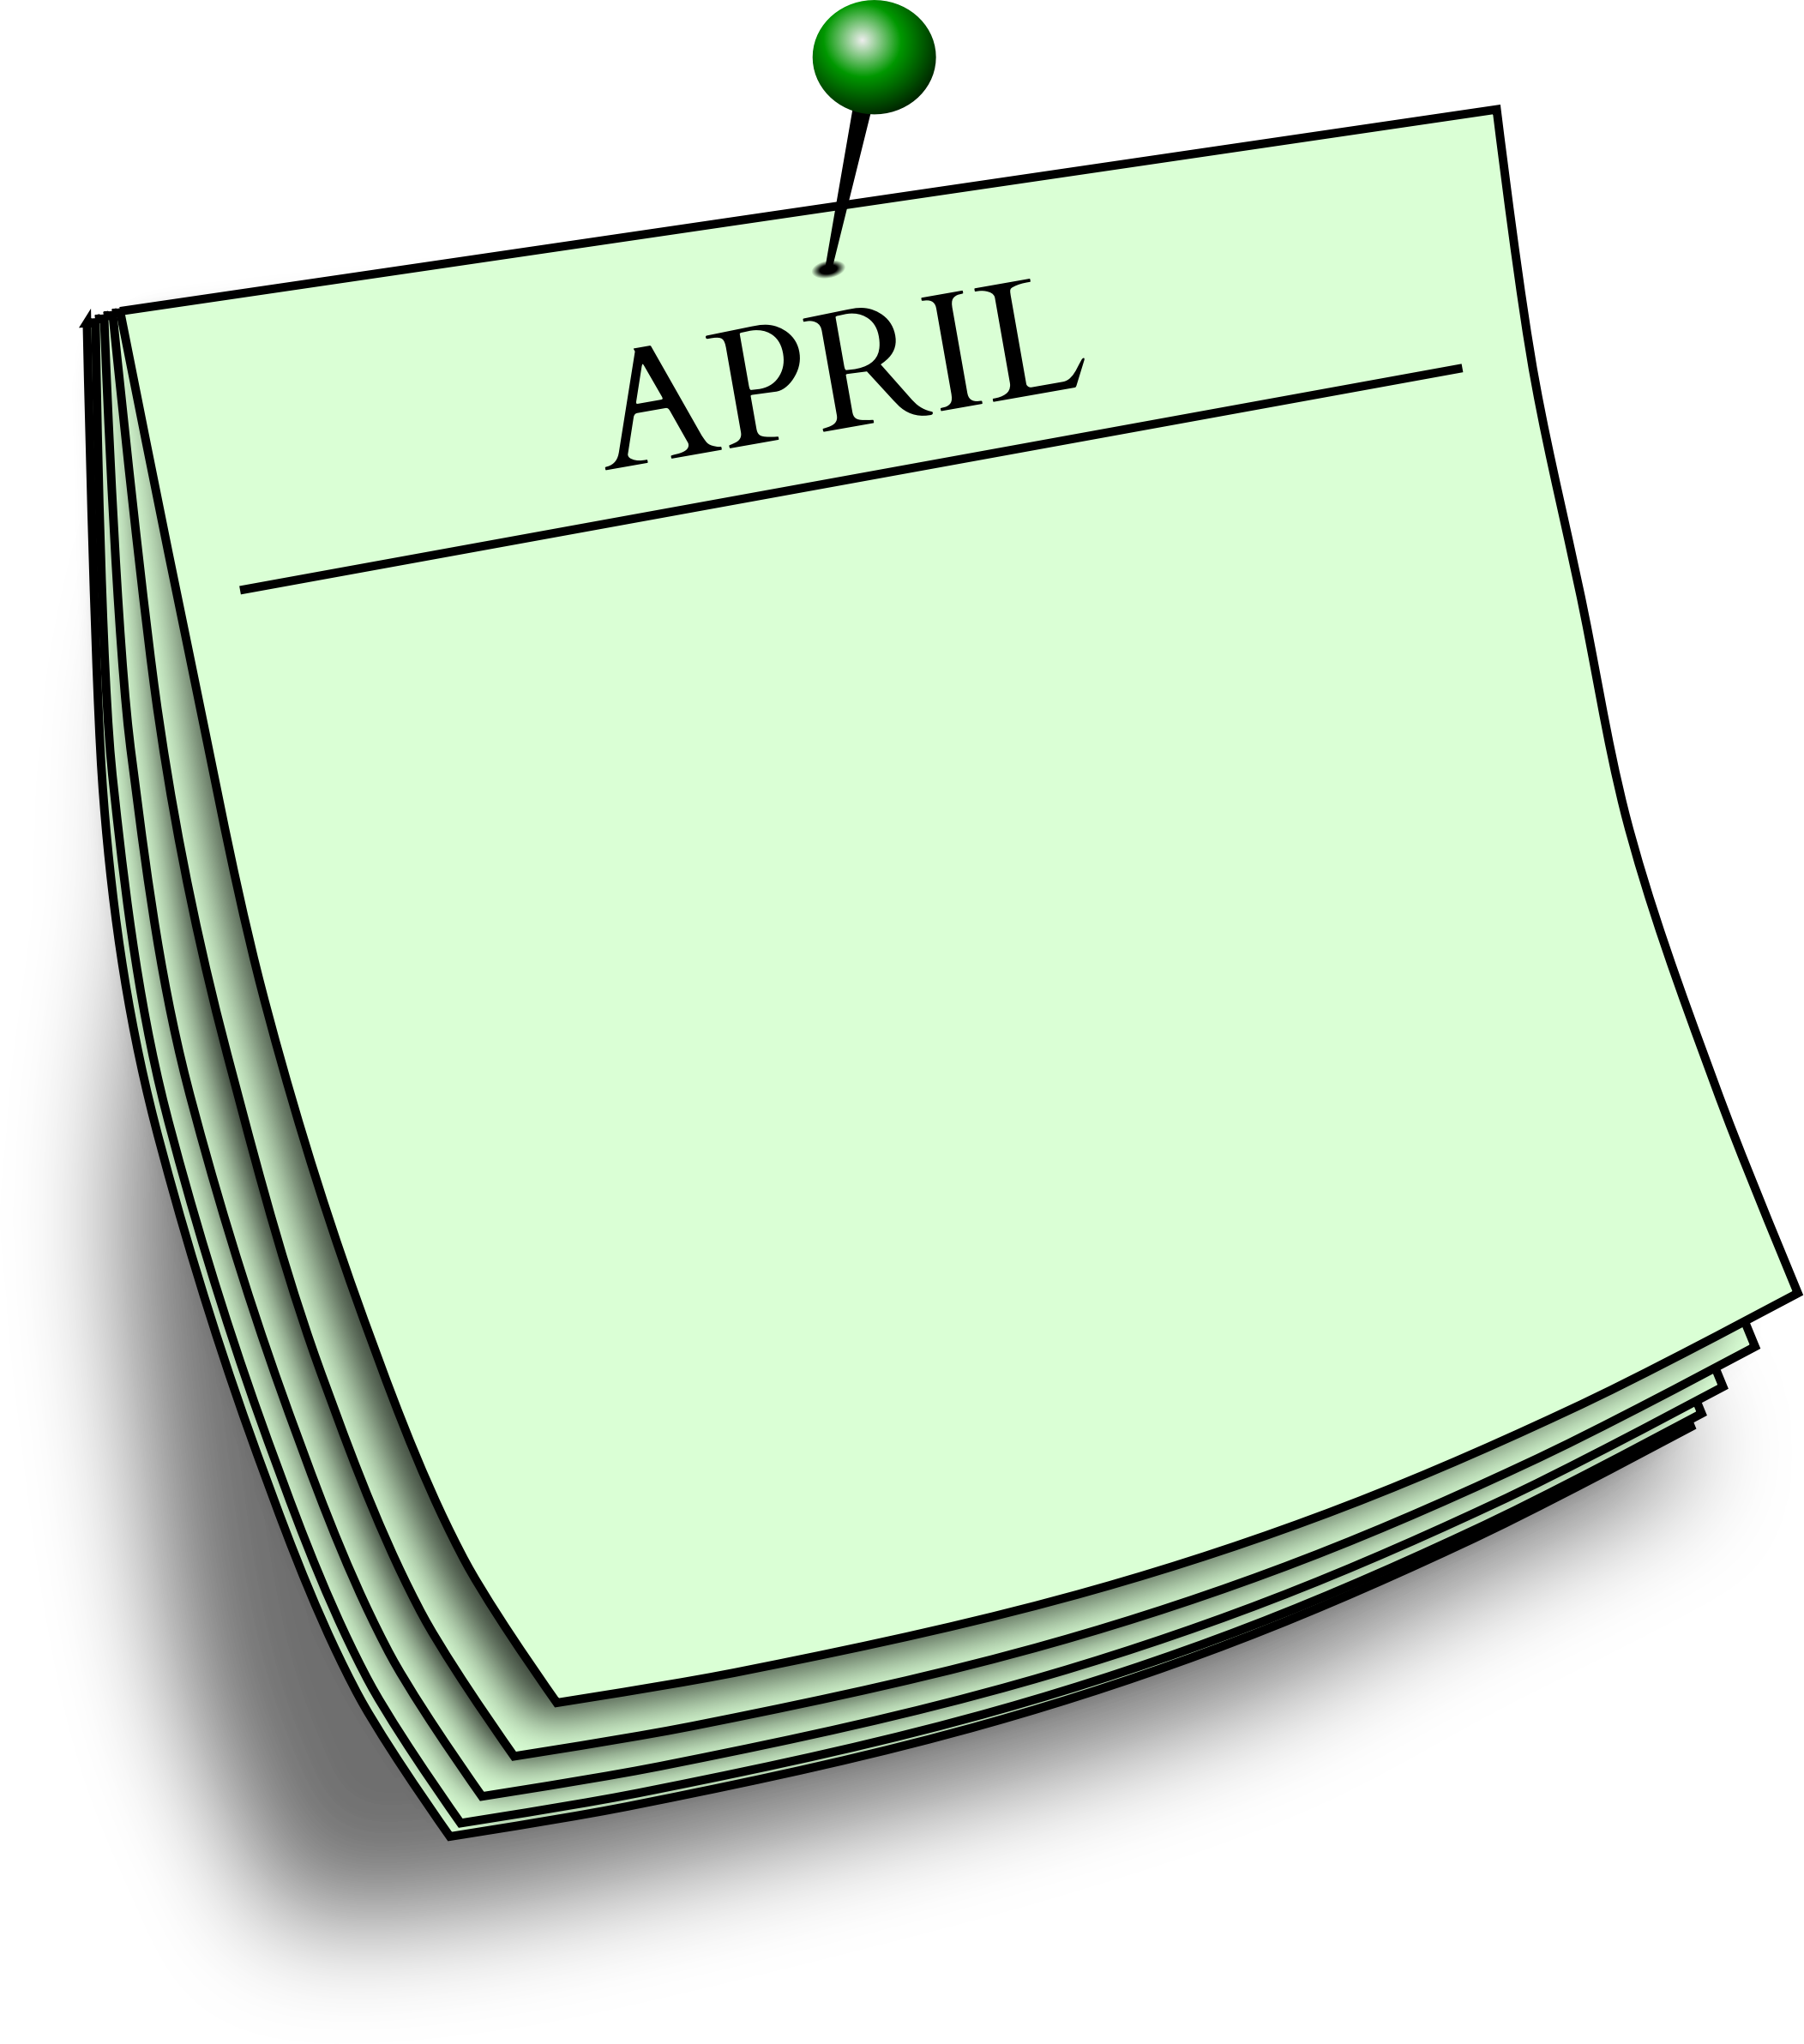 Monthly note - April by Firkin